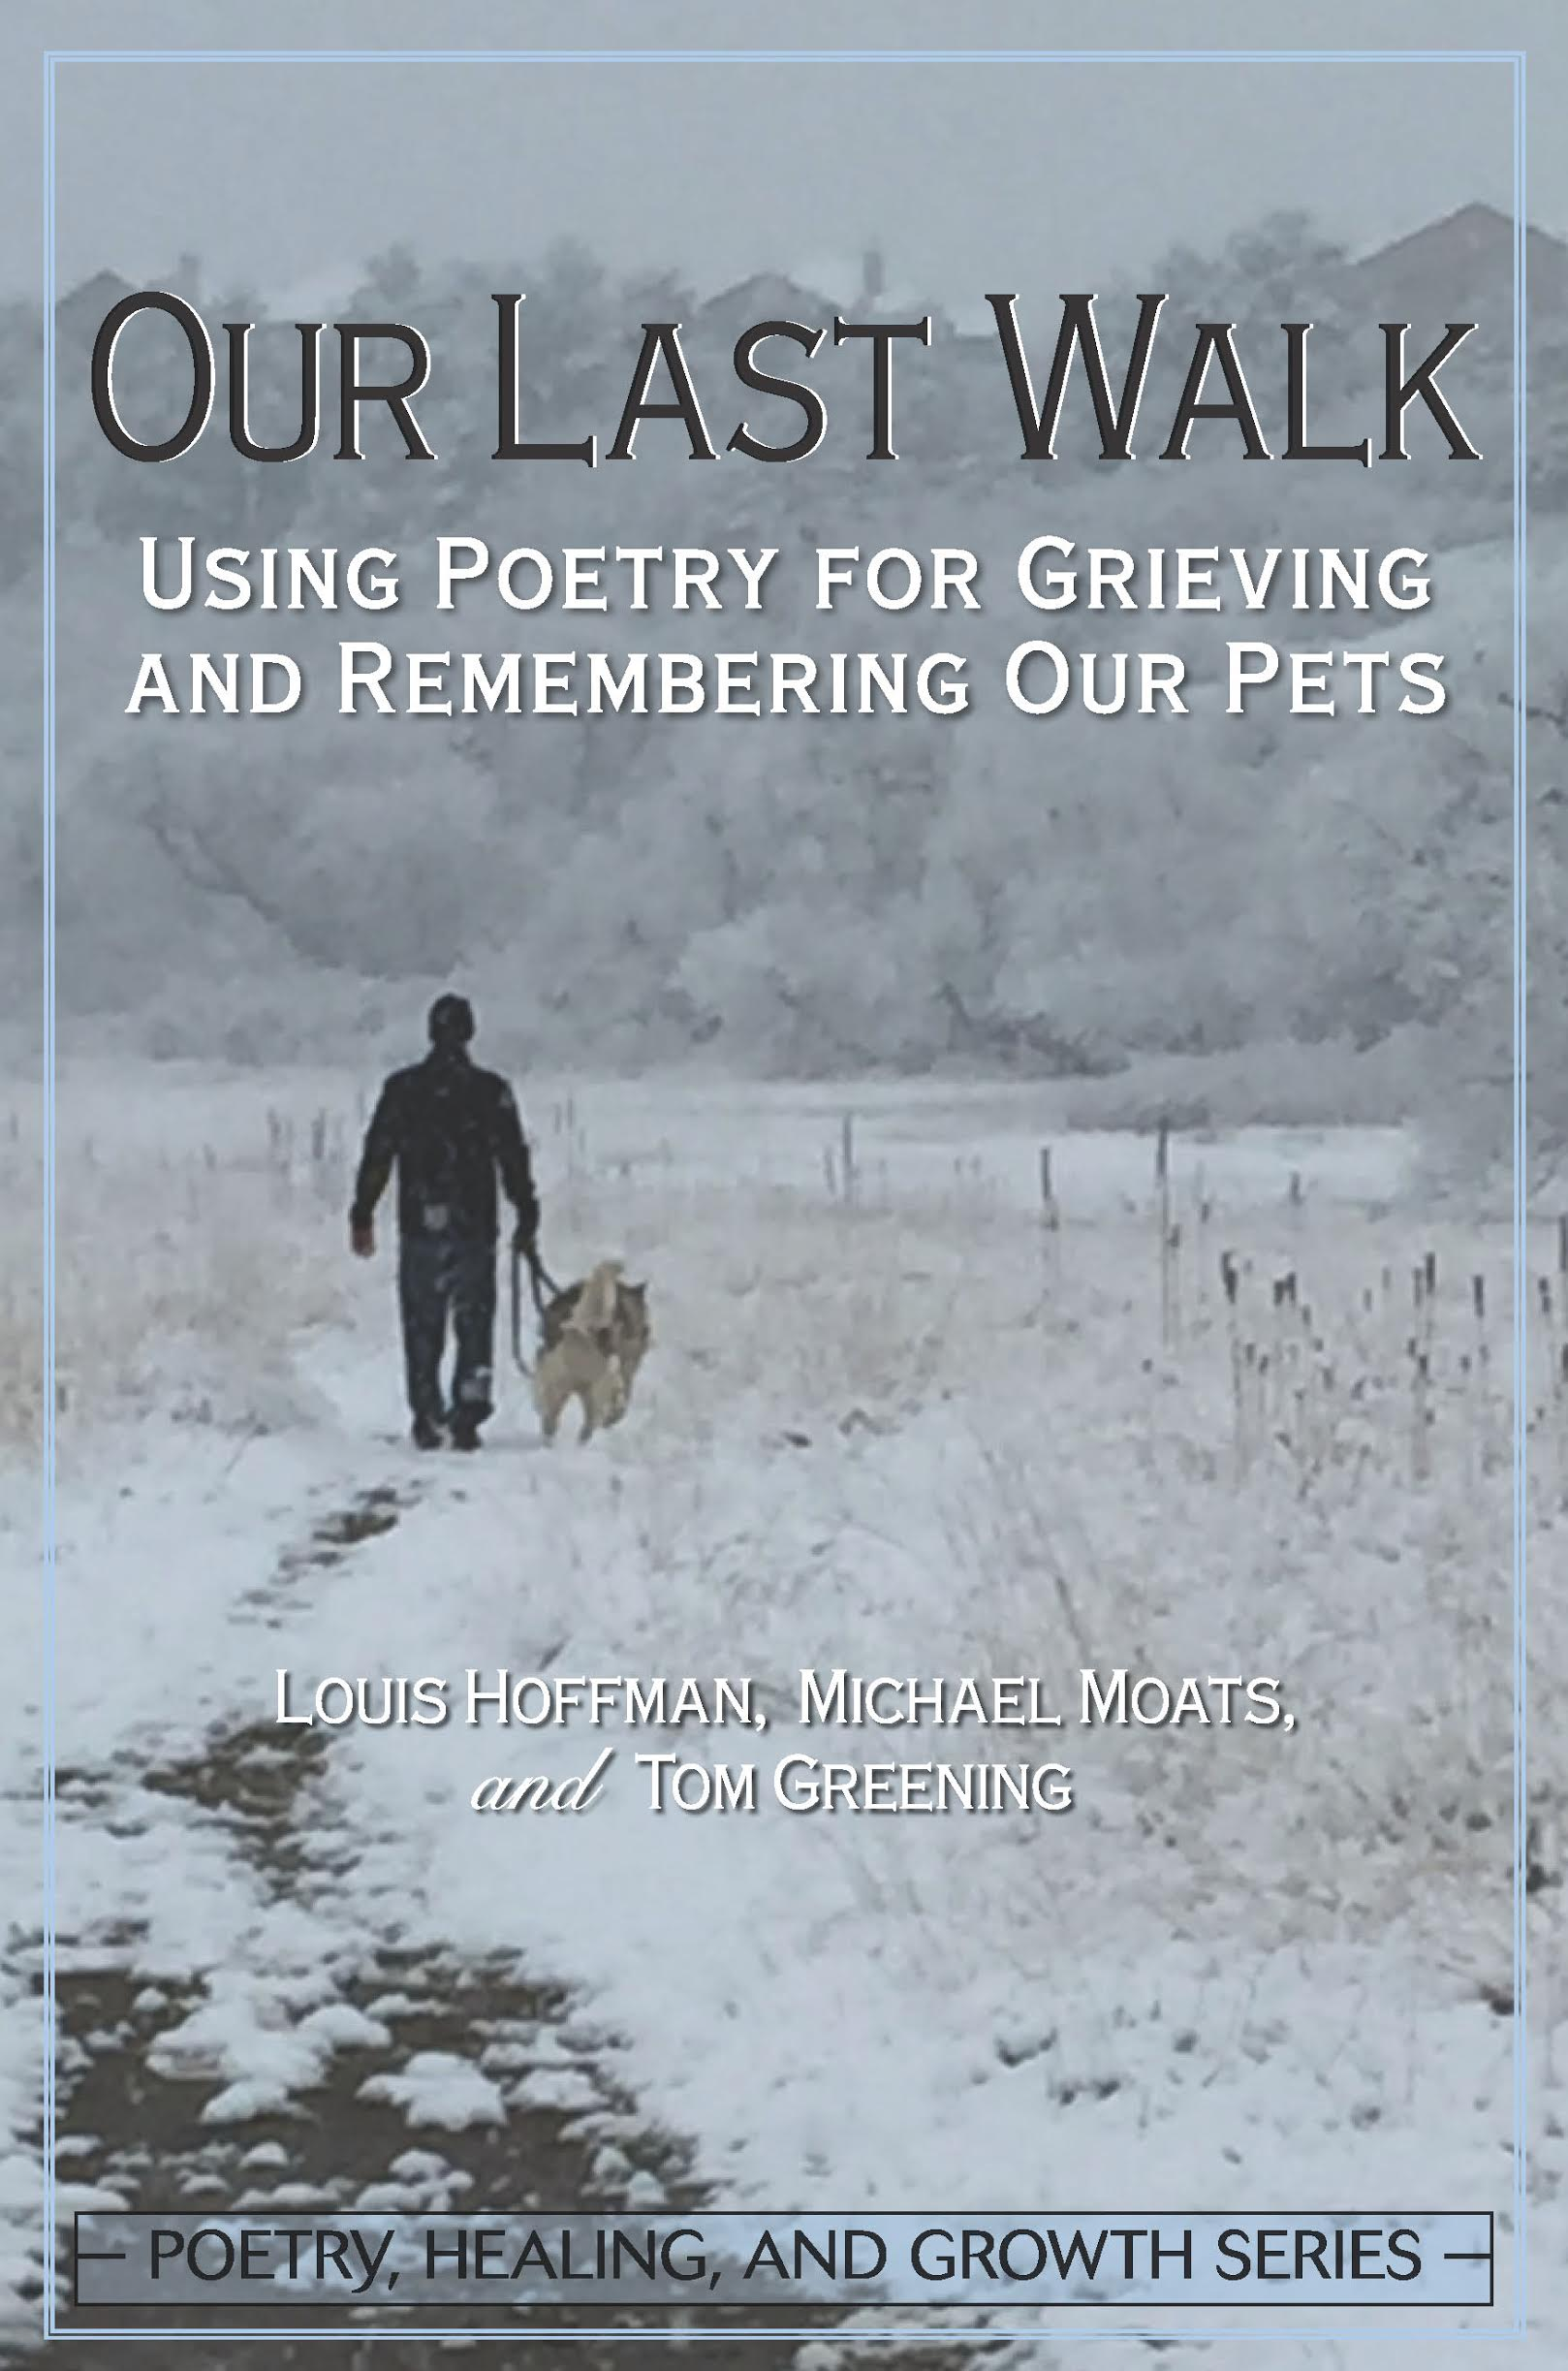 Our Last Walk: Using Poetry for Grieving and Remembering Our Pets Image